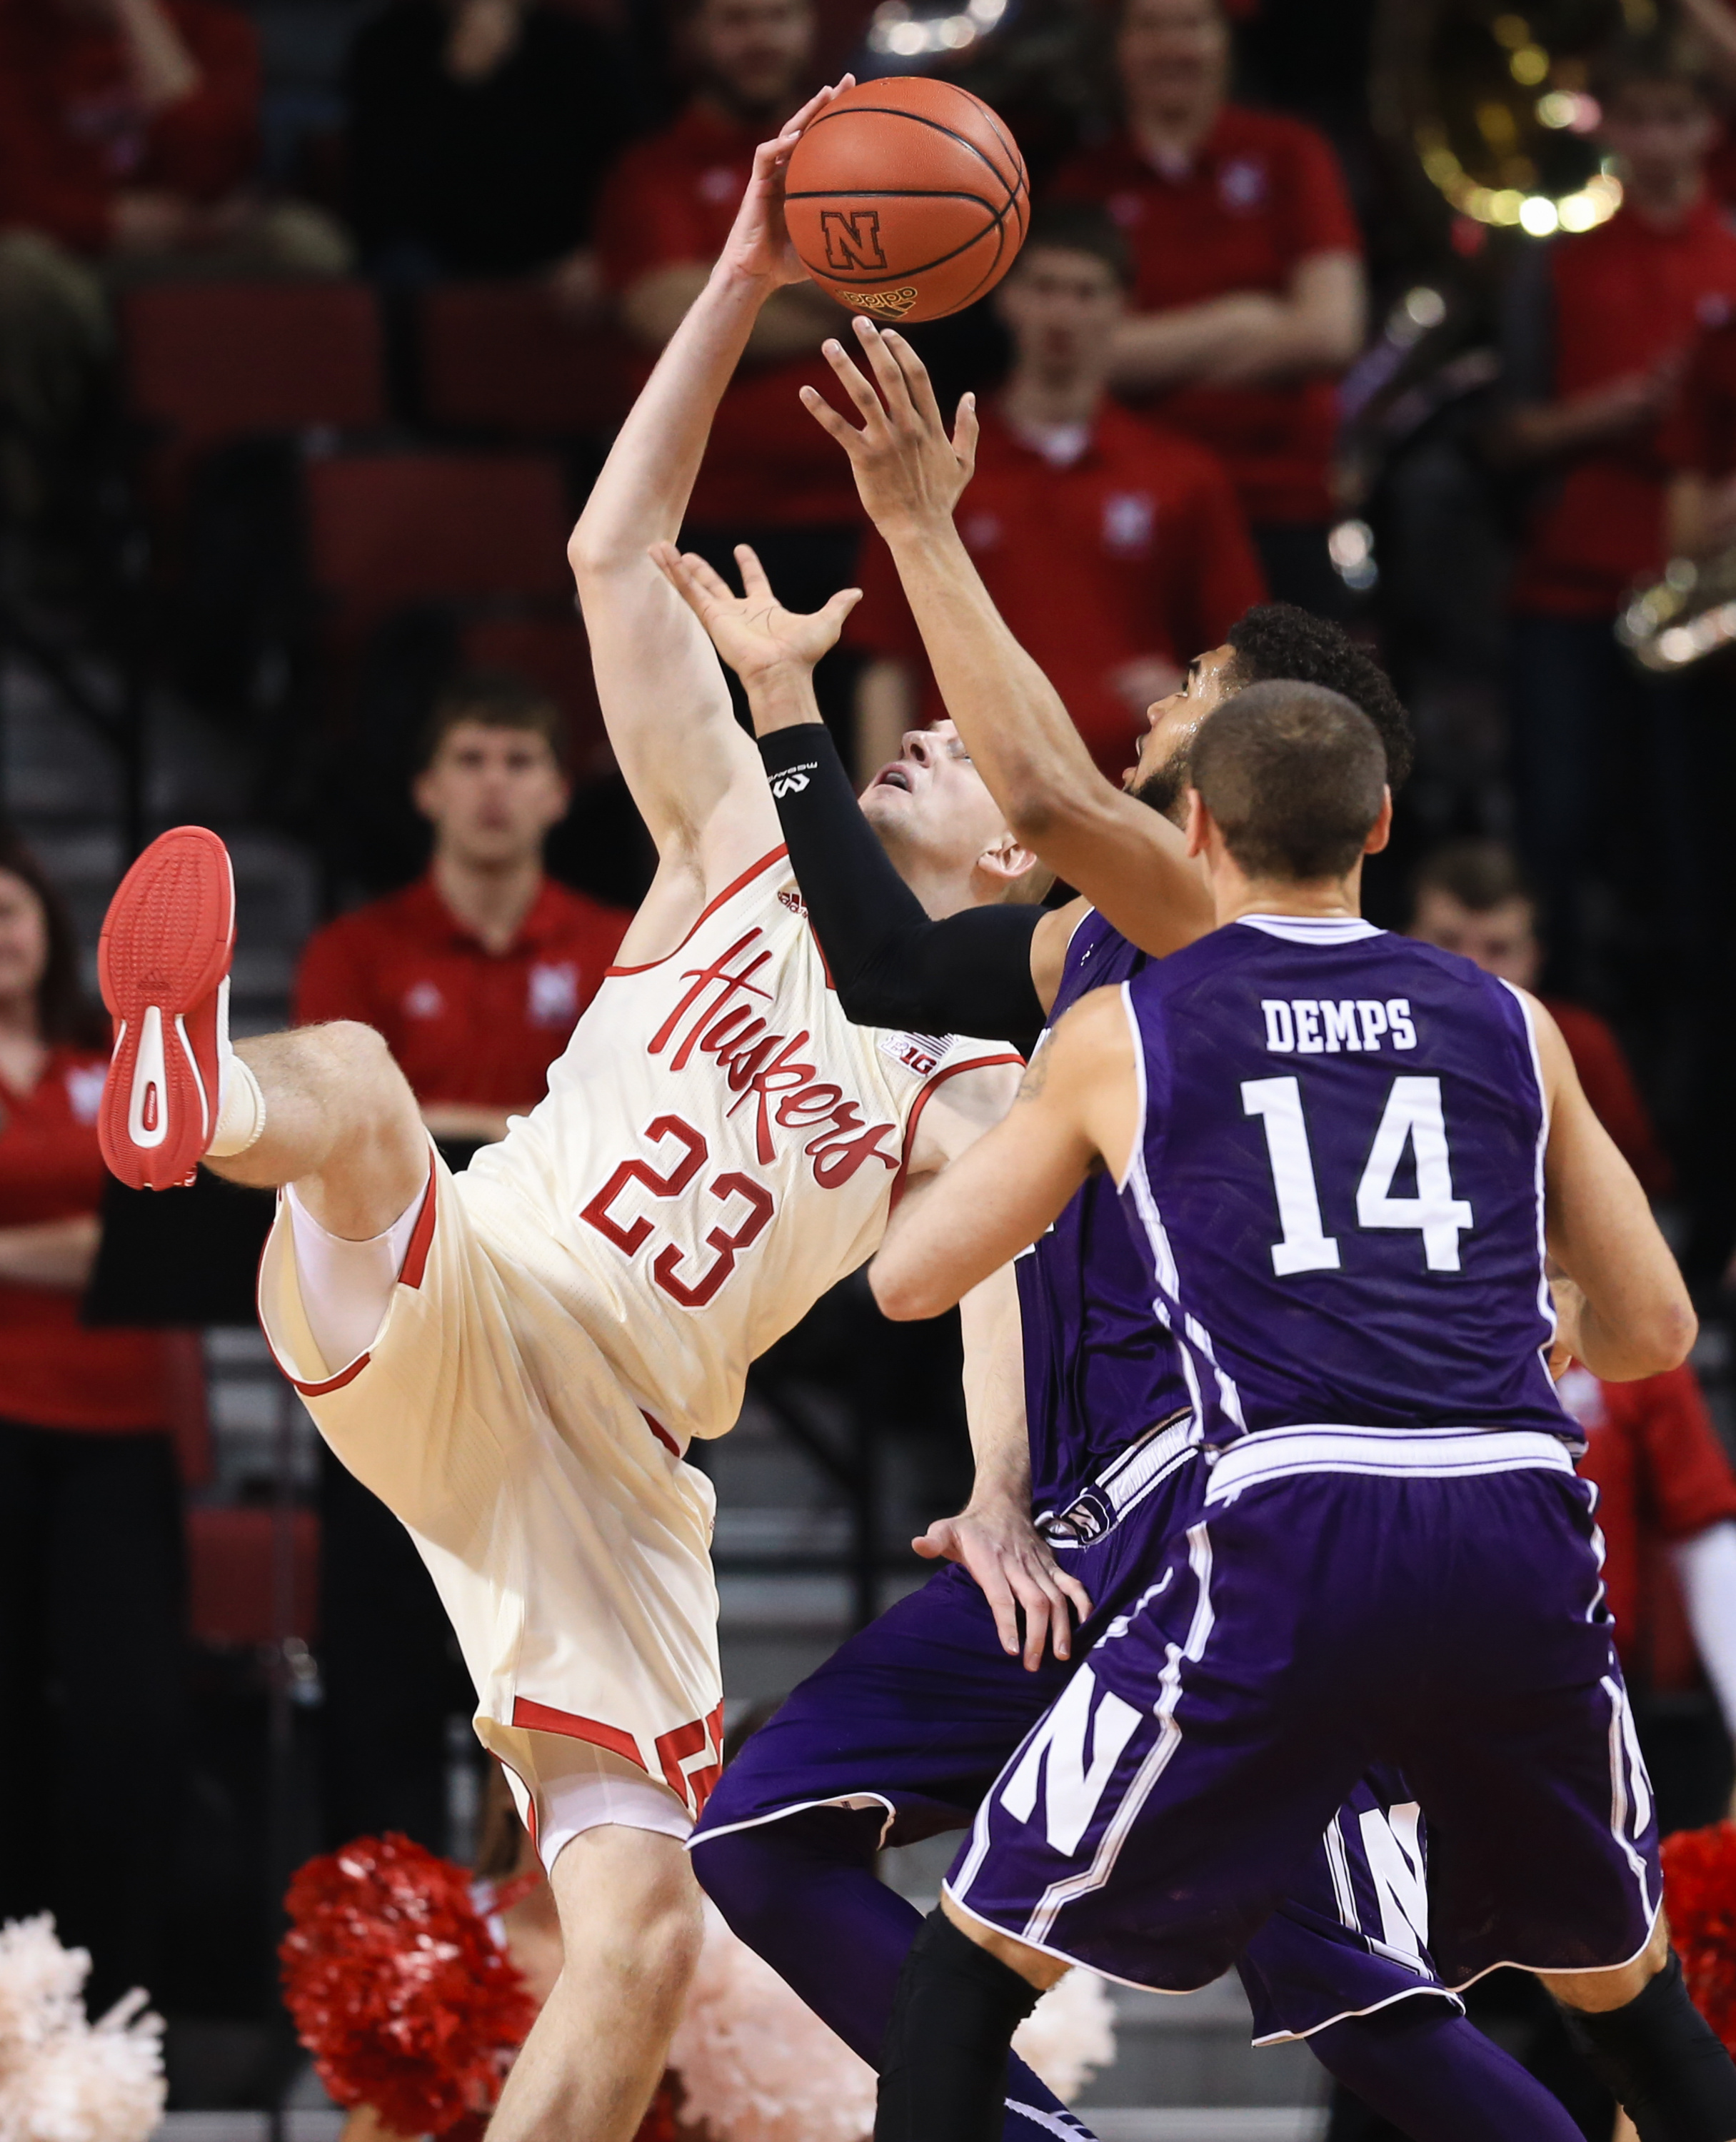 Nebraska's Nick Fuller (23) goes for a rebound against Northwestern's Sanjay Lumpkin (34) and Tre Demps (14) during the first half of an NCAA college basketball game in Lincoln, Neb., Wednesday, Dec. 30, 2015. (AP Photo/Nati Harnik)